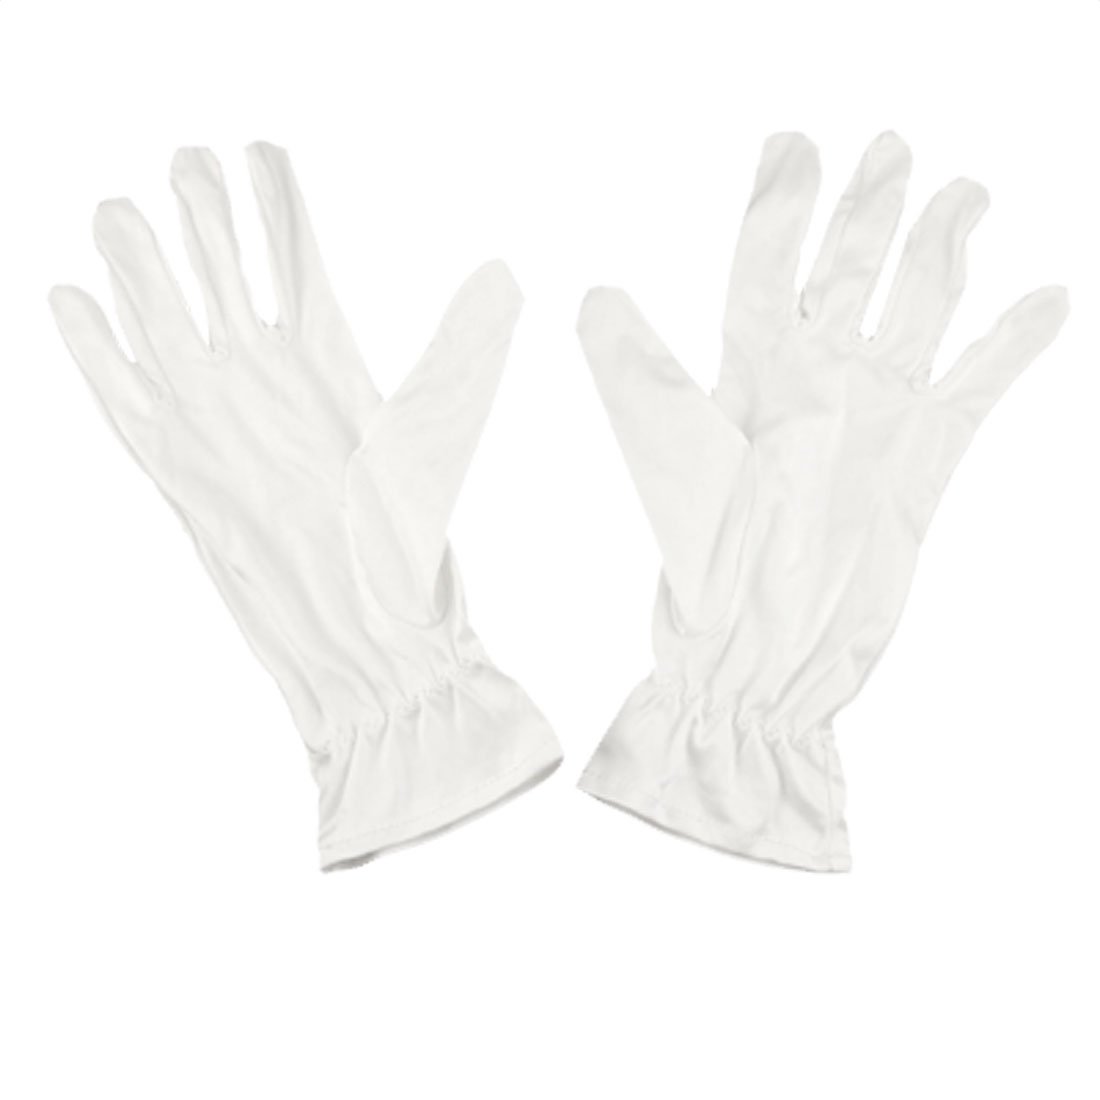 Pair White Microfiber Dust Proof Jewelry Silver Inspection Working Gloves S